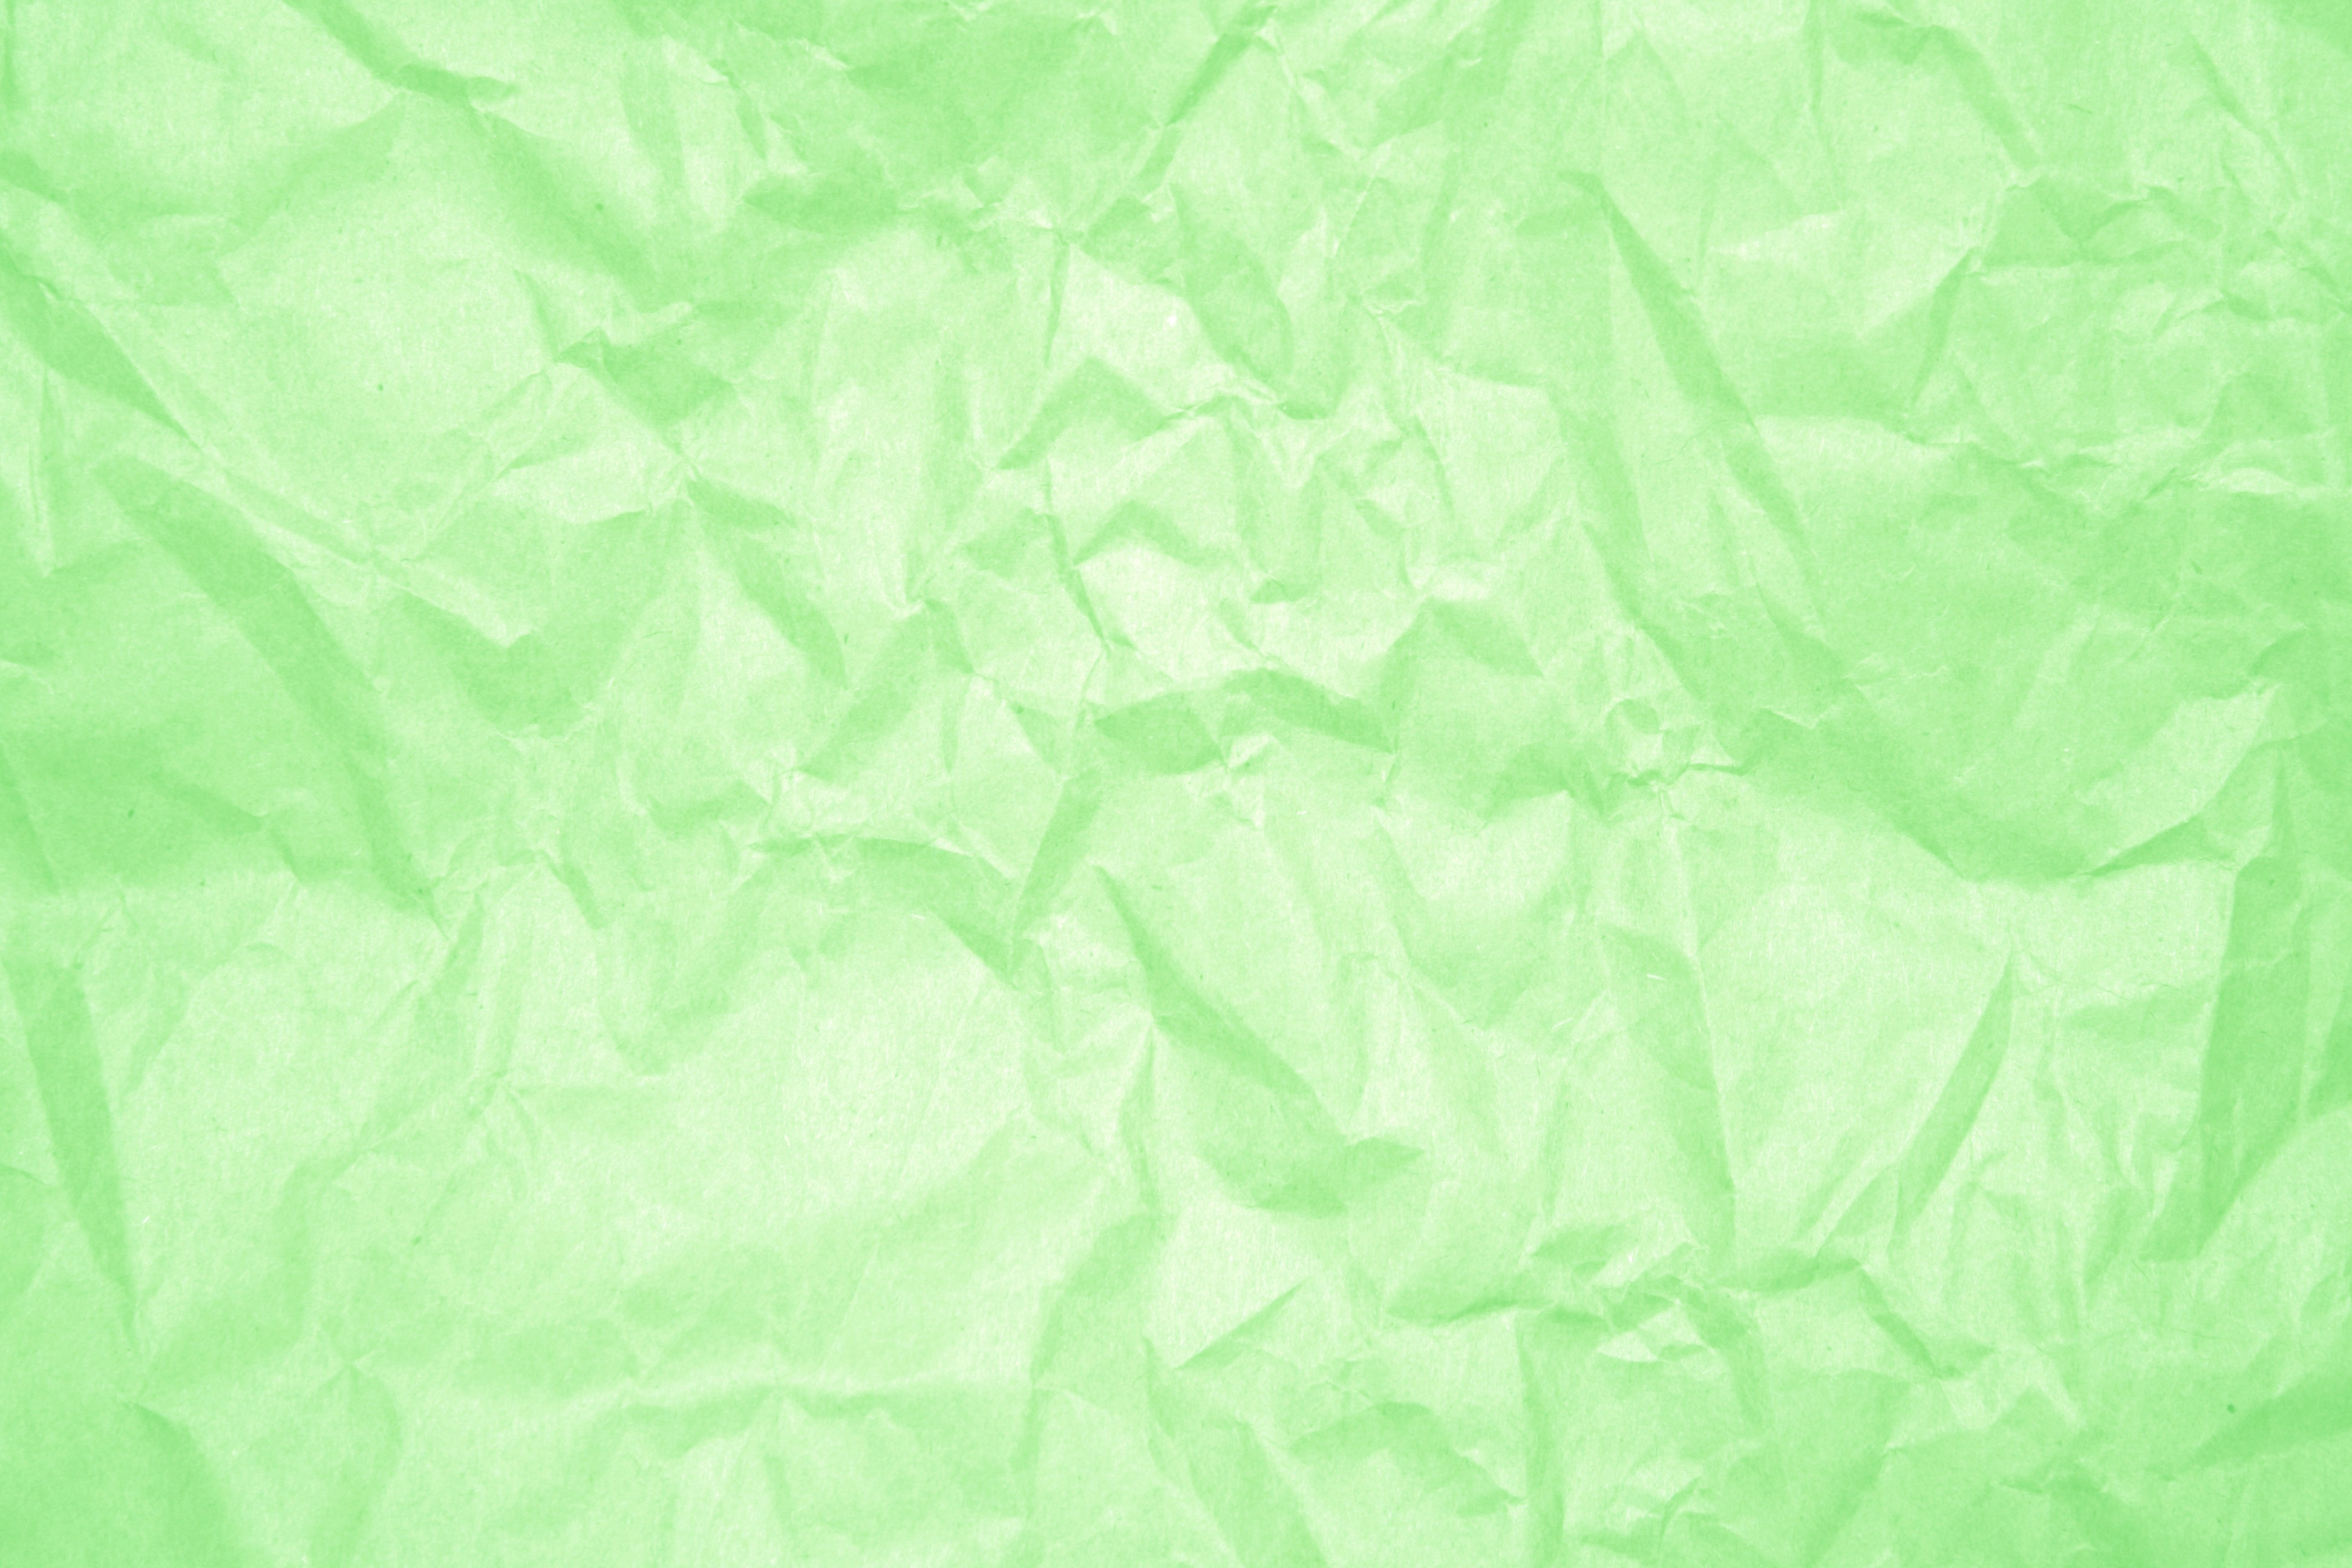 Crumpled Light Green Paper Texture Picture Photograph Photos 3888x2592